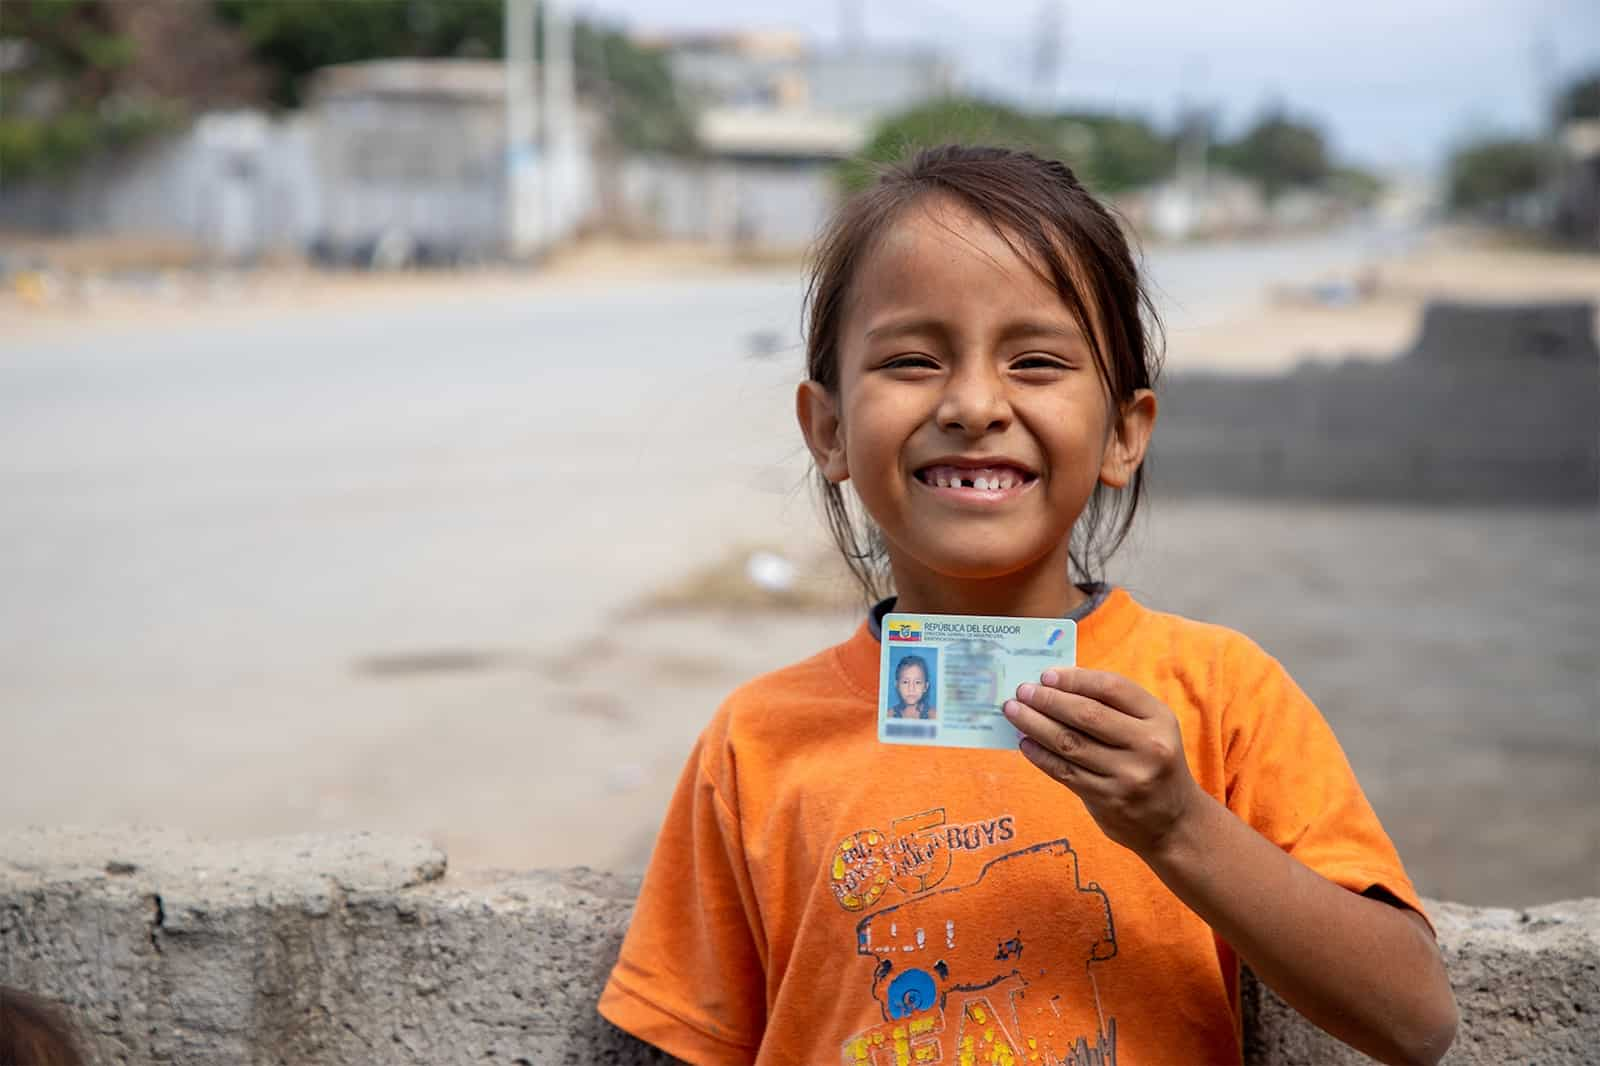 A girl in an orange shirt holds up an identification card.